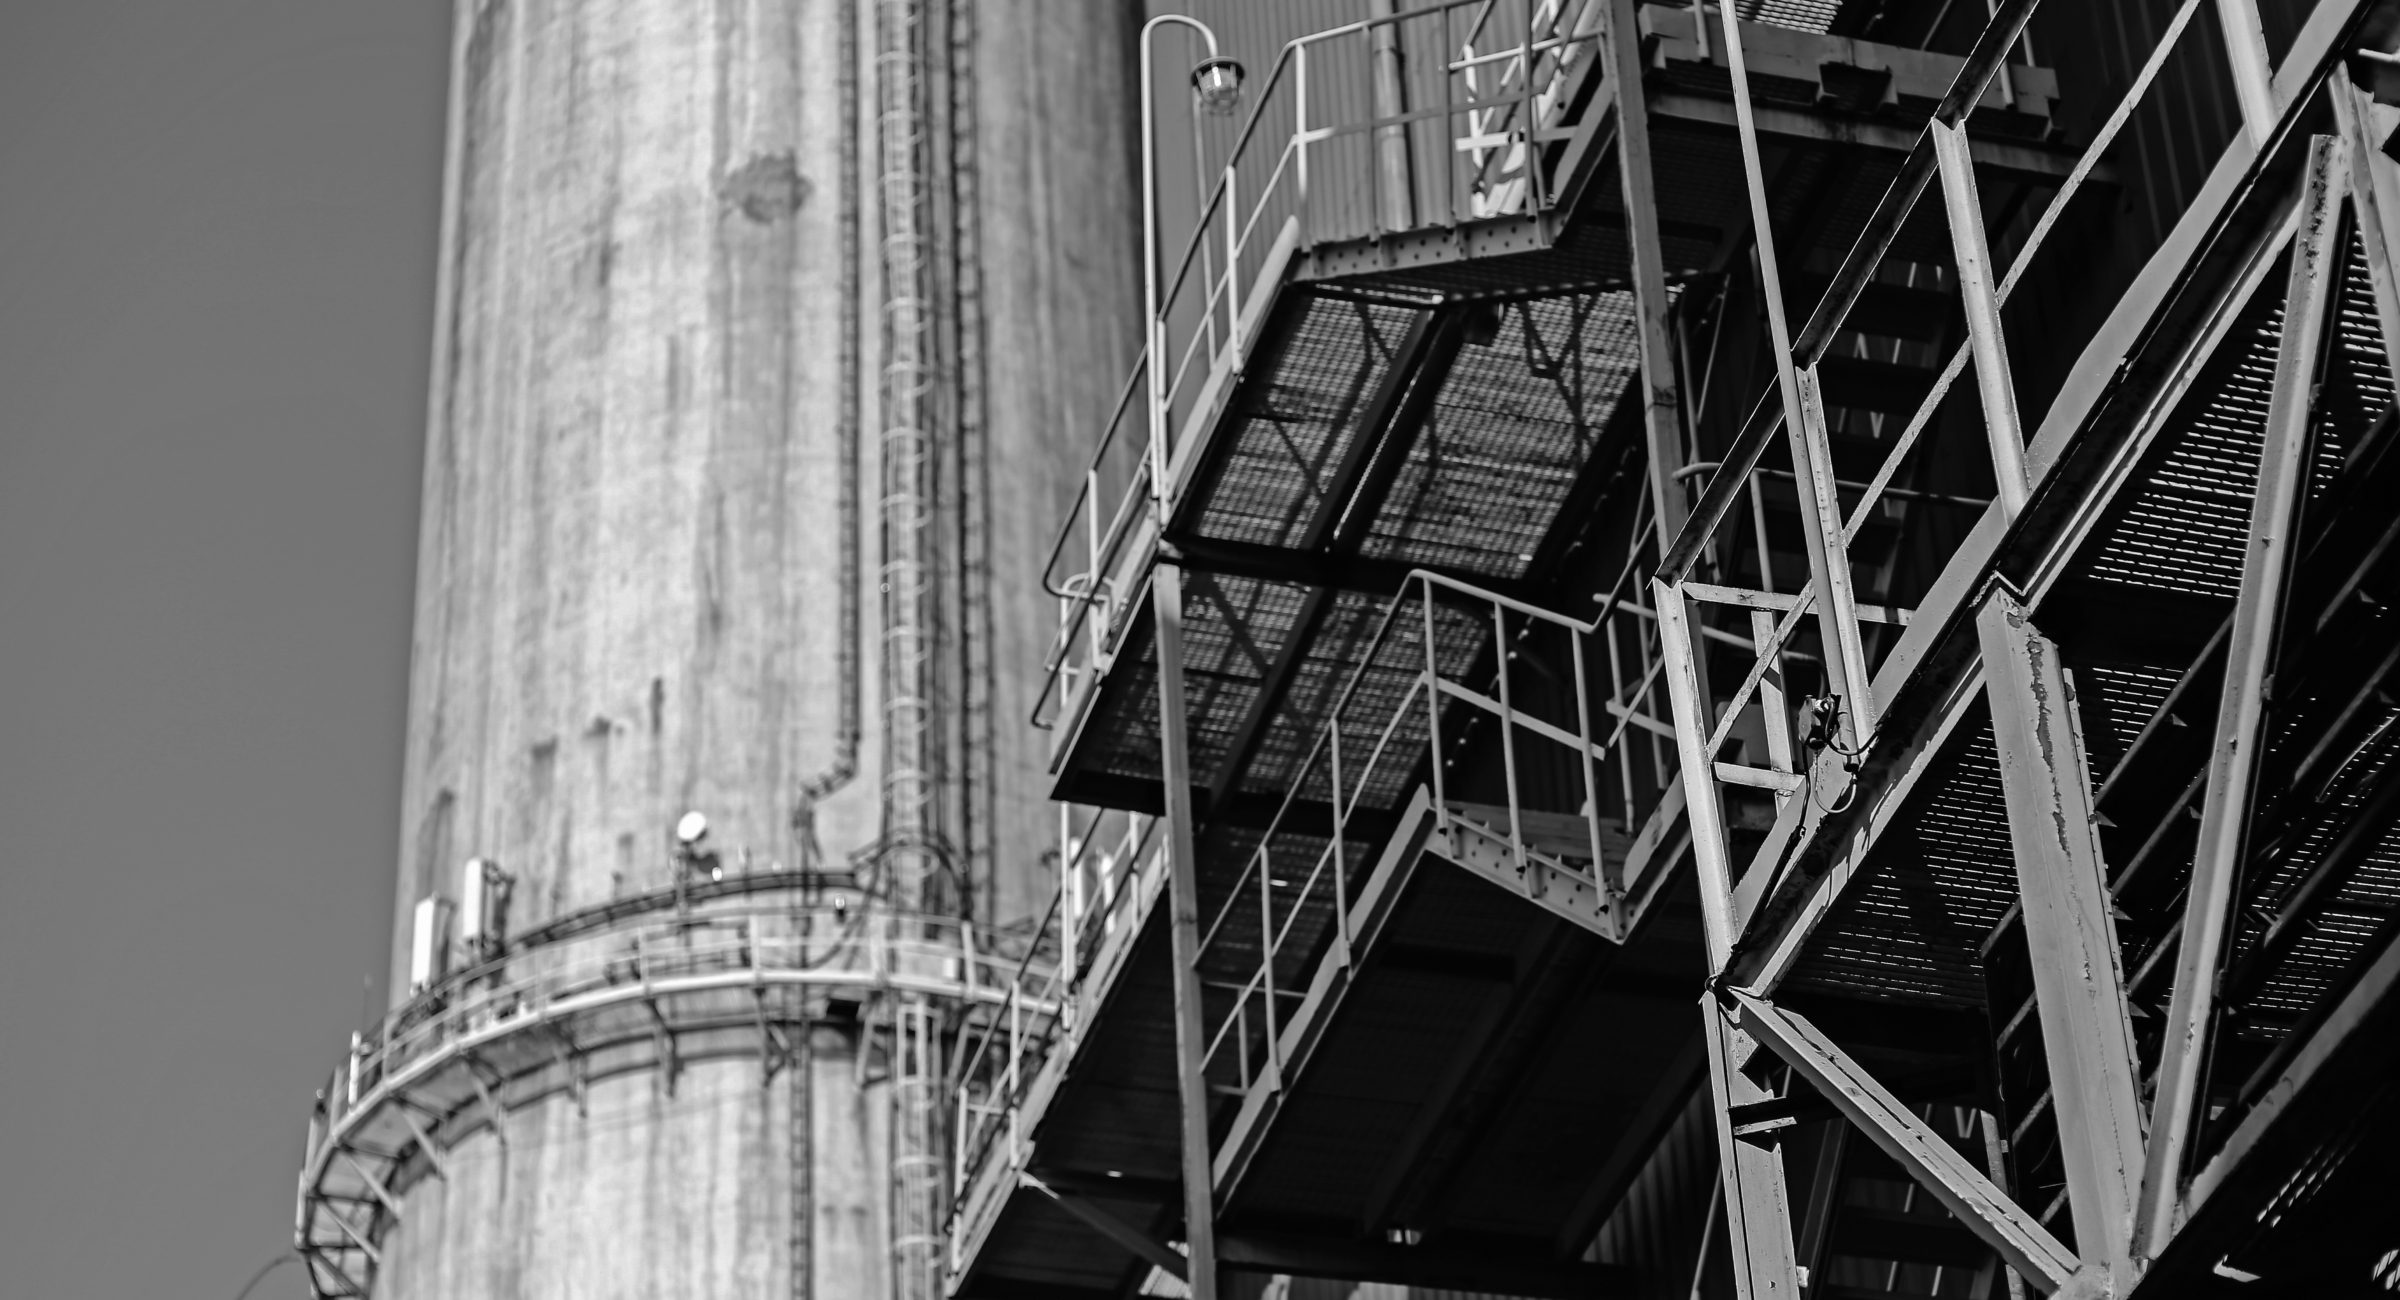 construction-industry-factory-industial-B&W